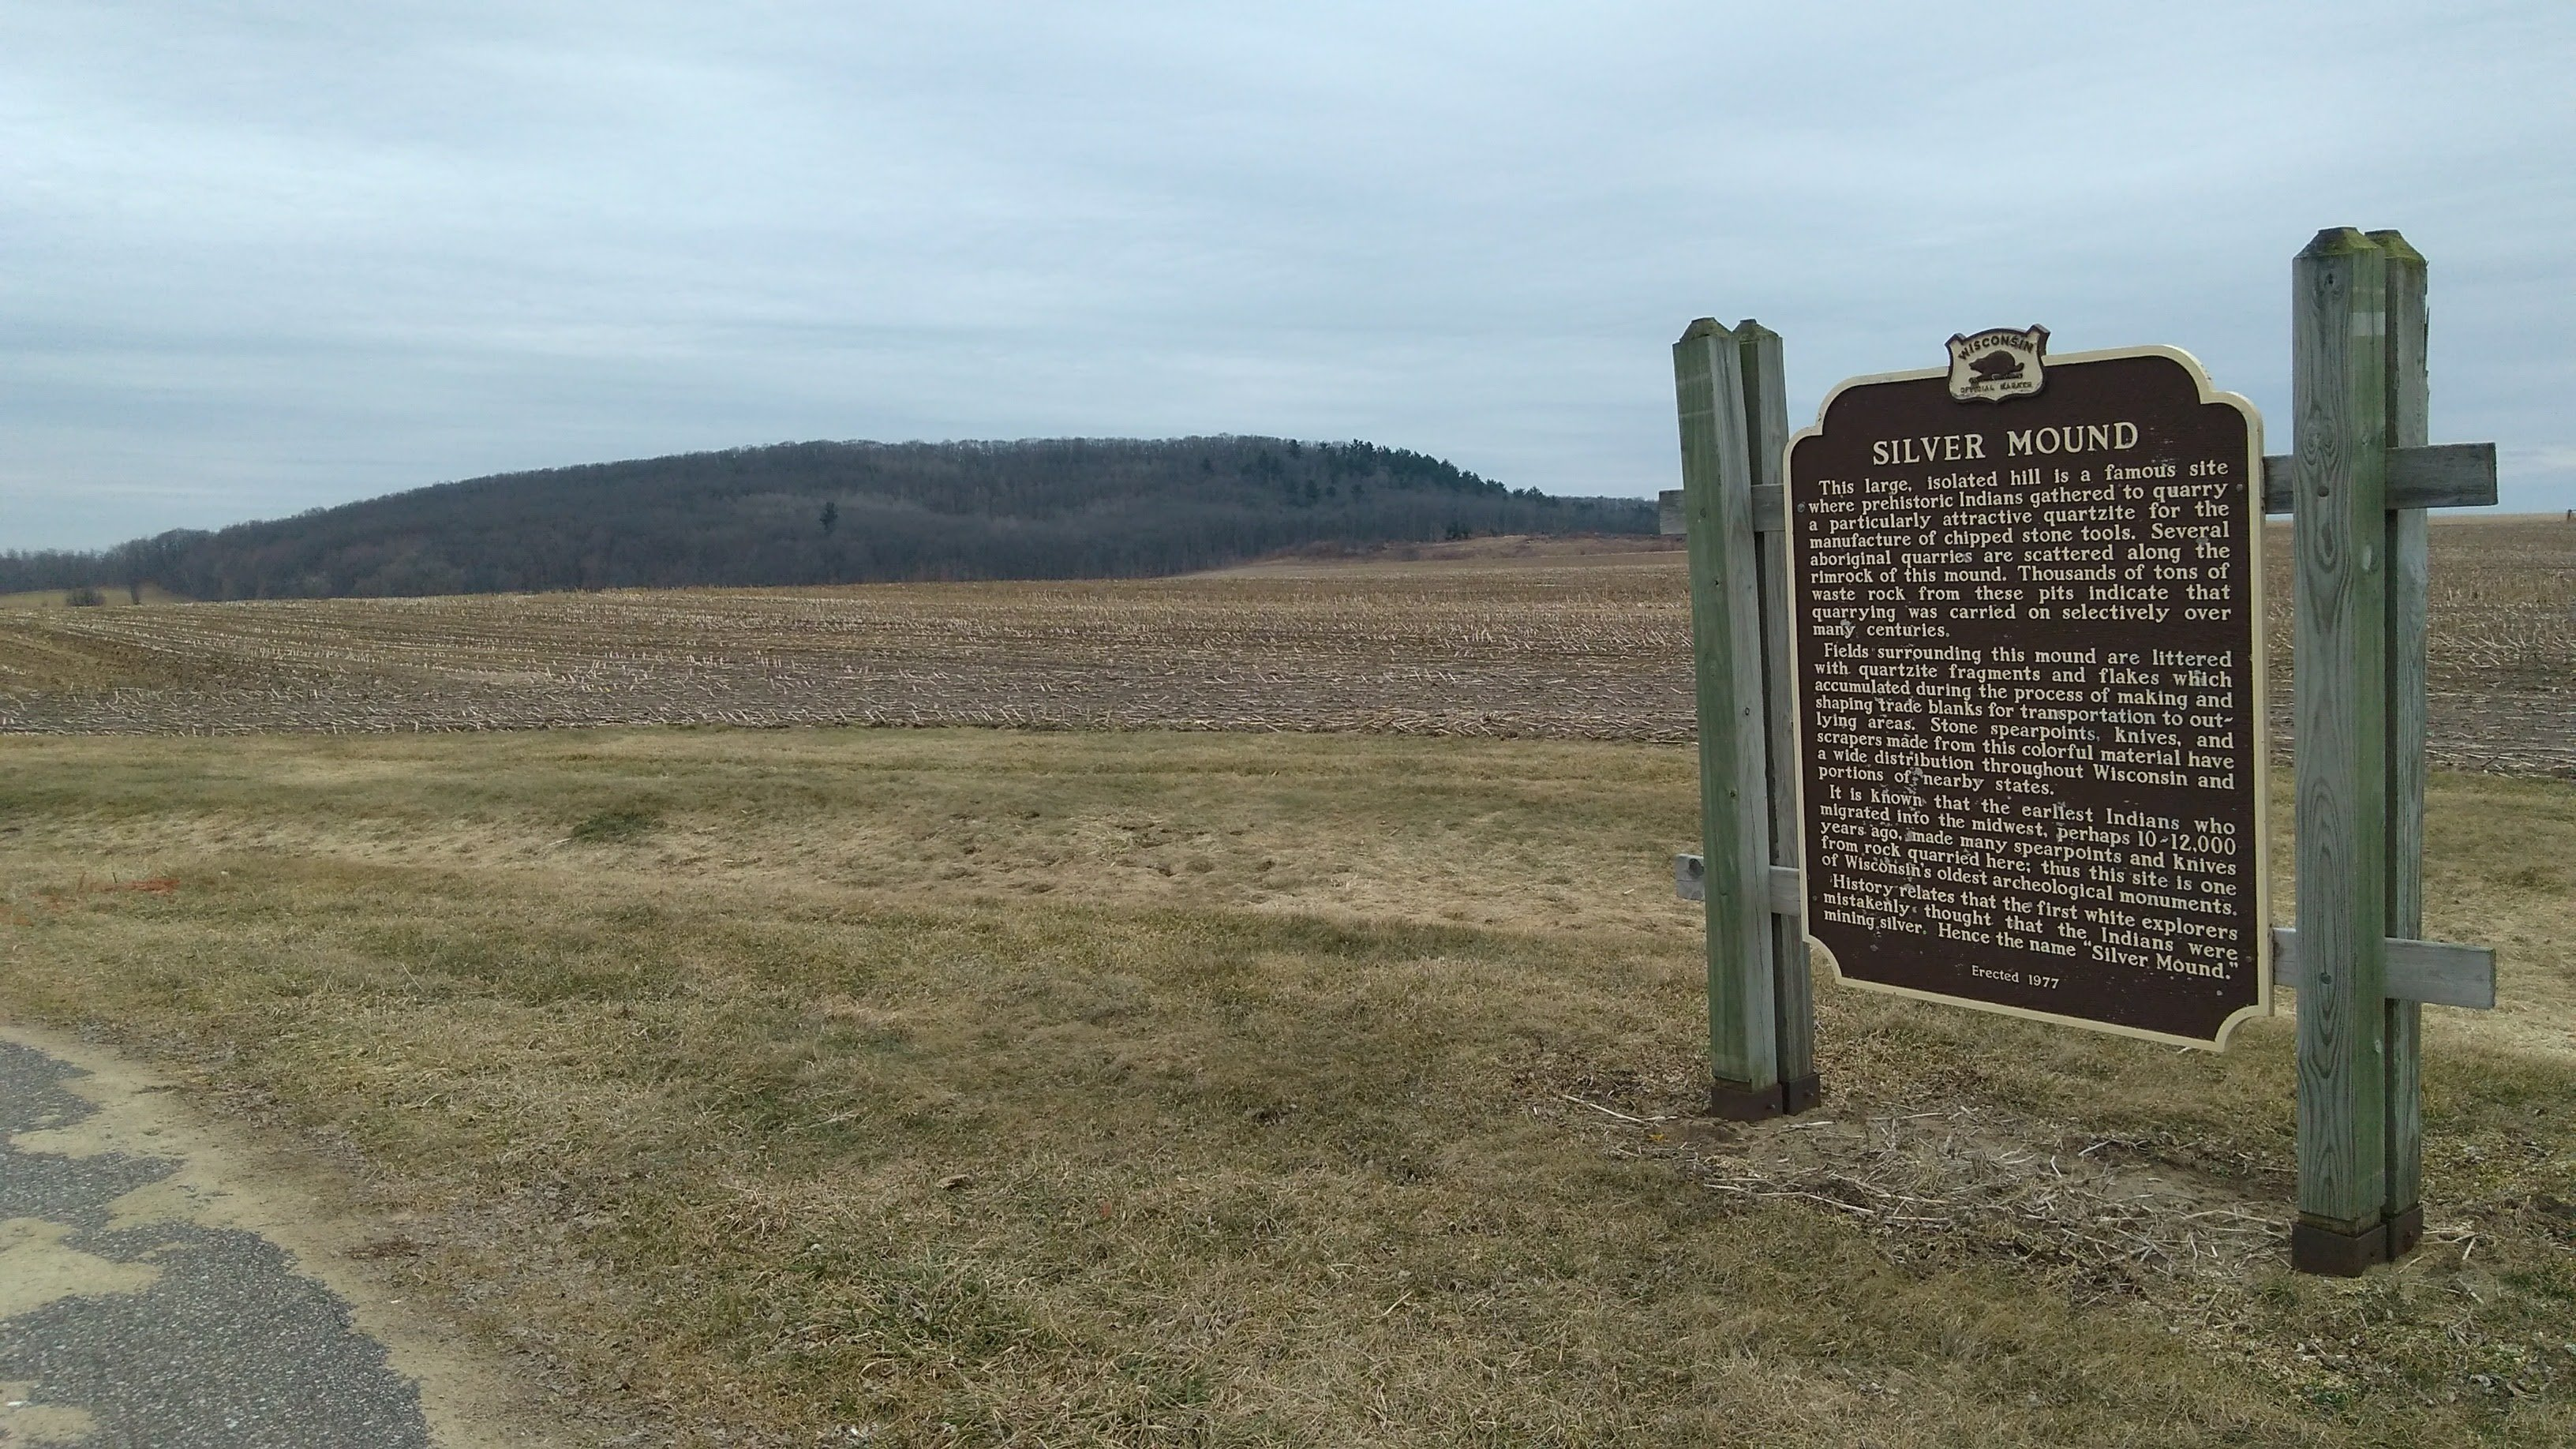 Silver Mound historic marker and view from the road.